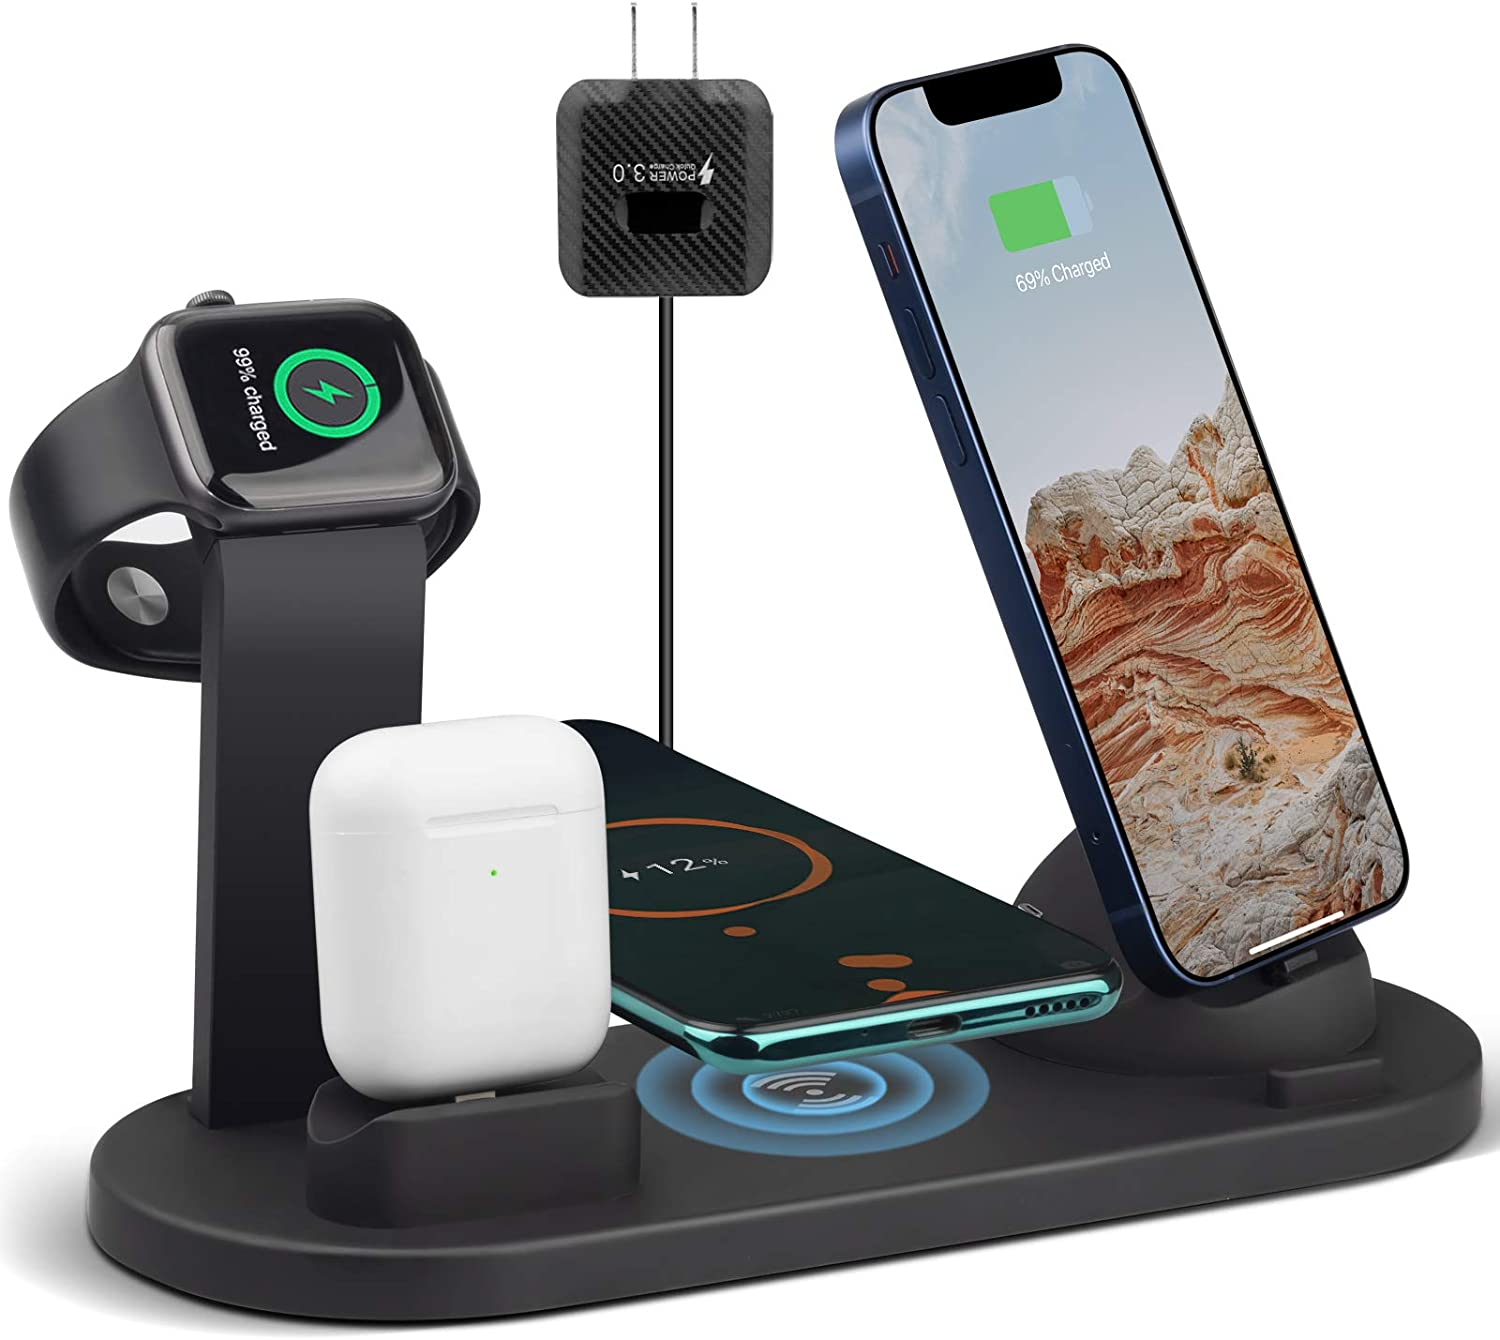 4 in 1 Wireless Charger Compatible with iPhone 12/11/11 Pro Max/X/Xs/XR/8 Plus Samsung Galaxy S9 S8, Fast Wireless Charging Station for AirPods Apple Watch Charger Stand Dock for Multiple Devices